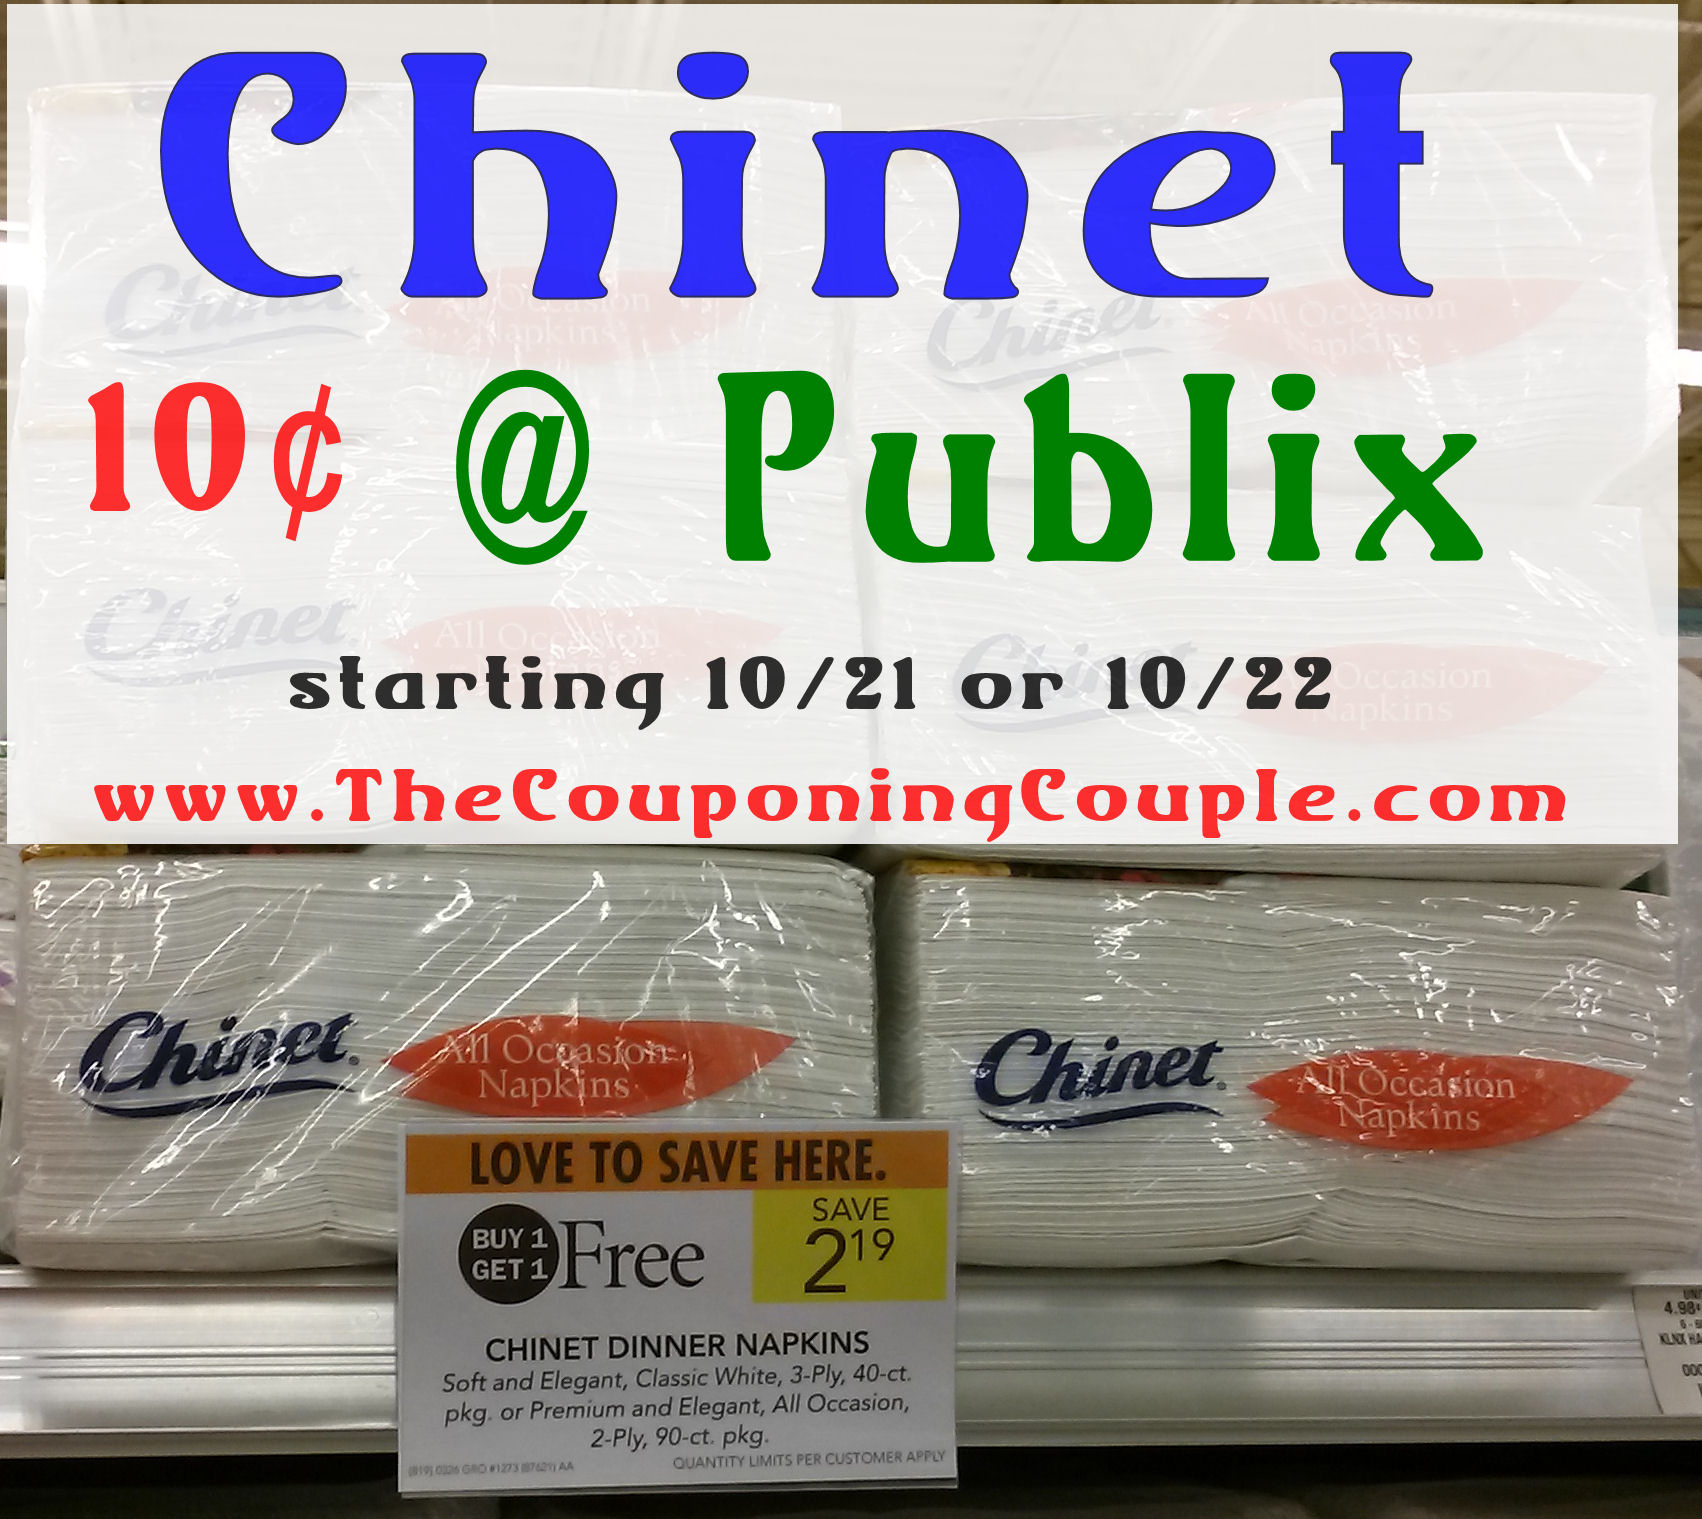 Hot Deal On Chinet Napkins At Publix Starting 10/22 - Free Printable Chinet Coupons